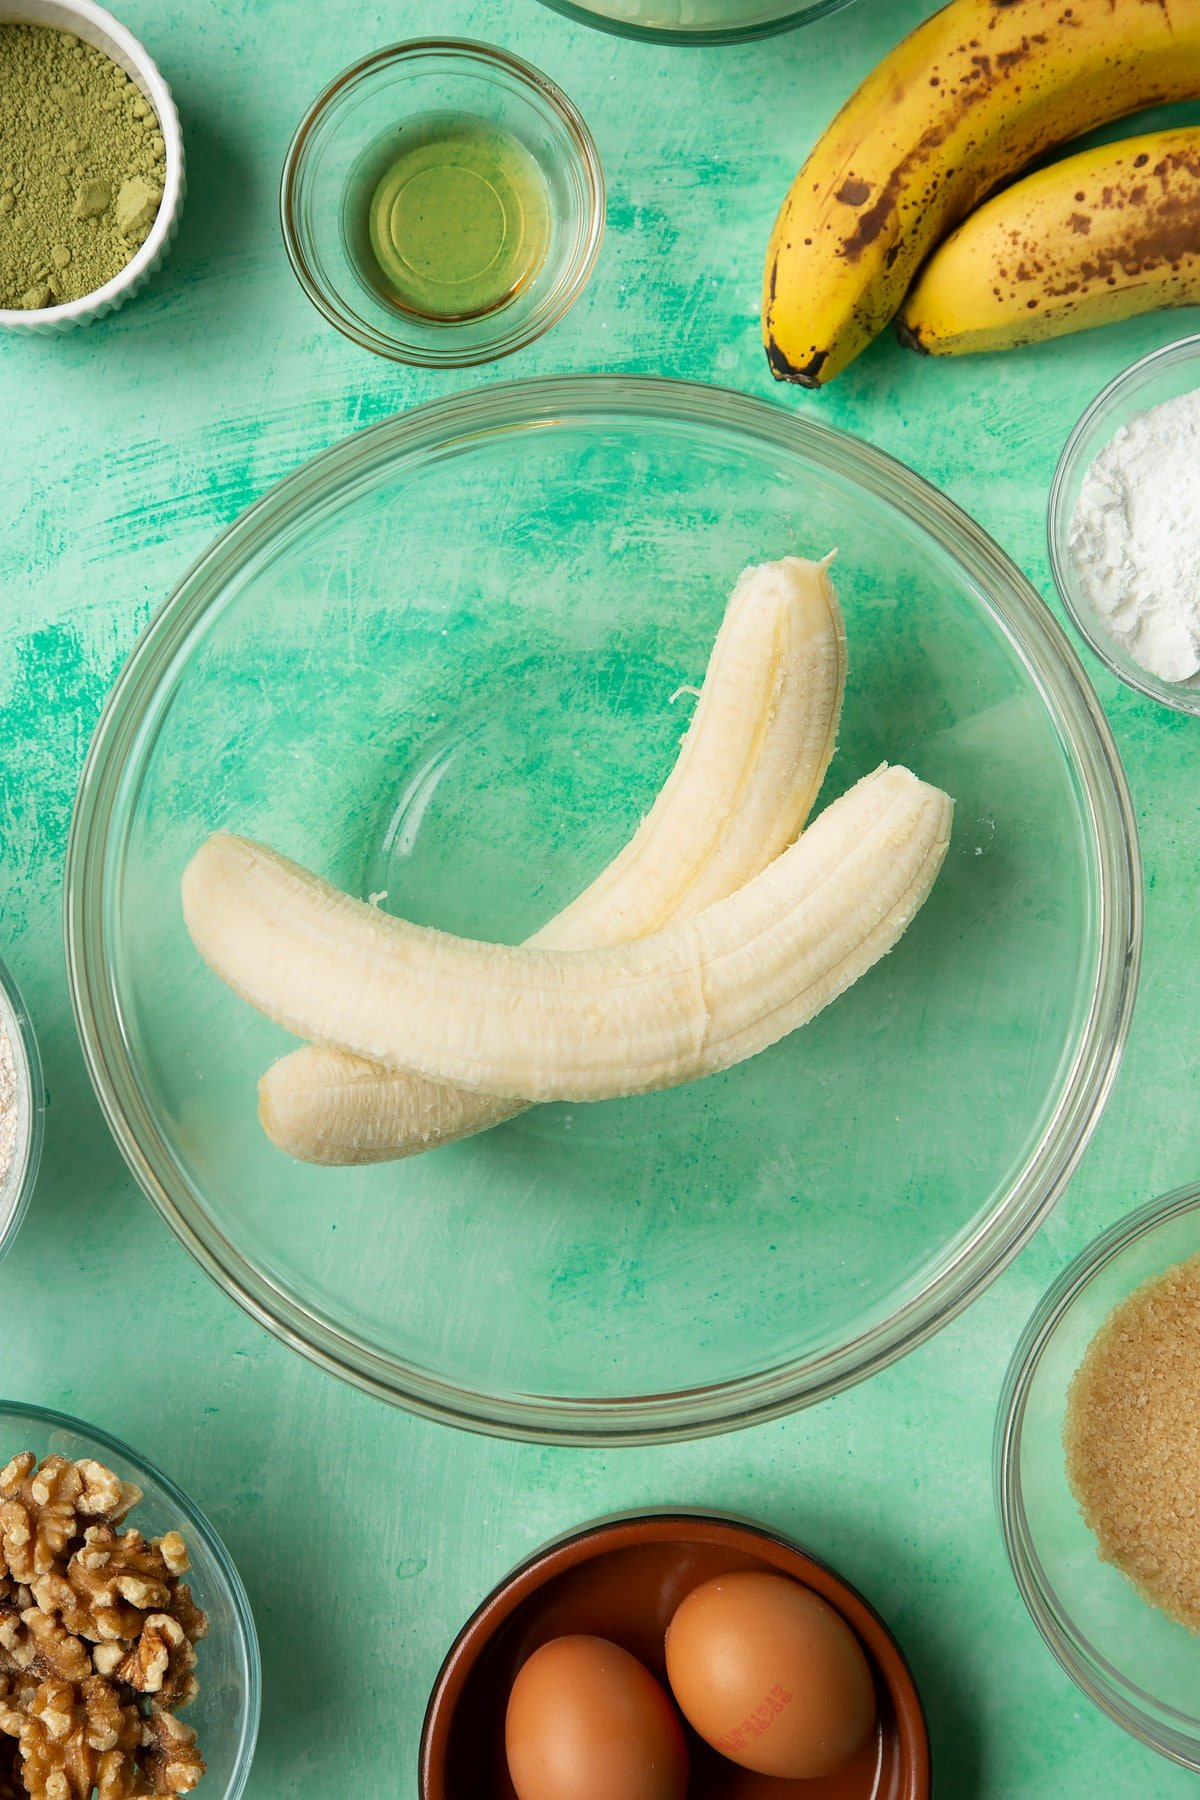 Overhead shot of blended bananas in a large clear bowl